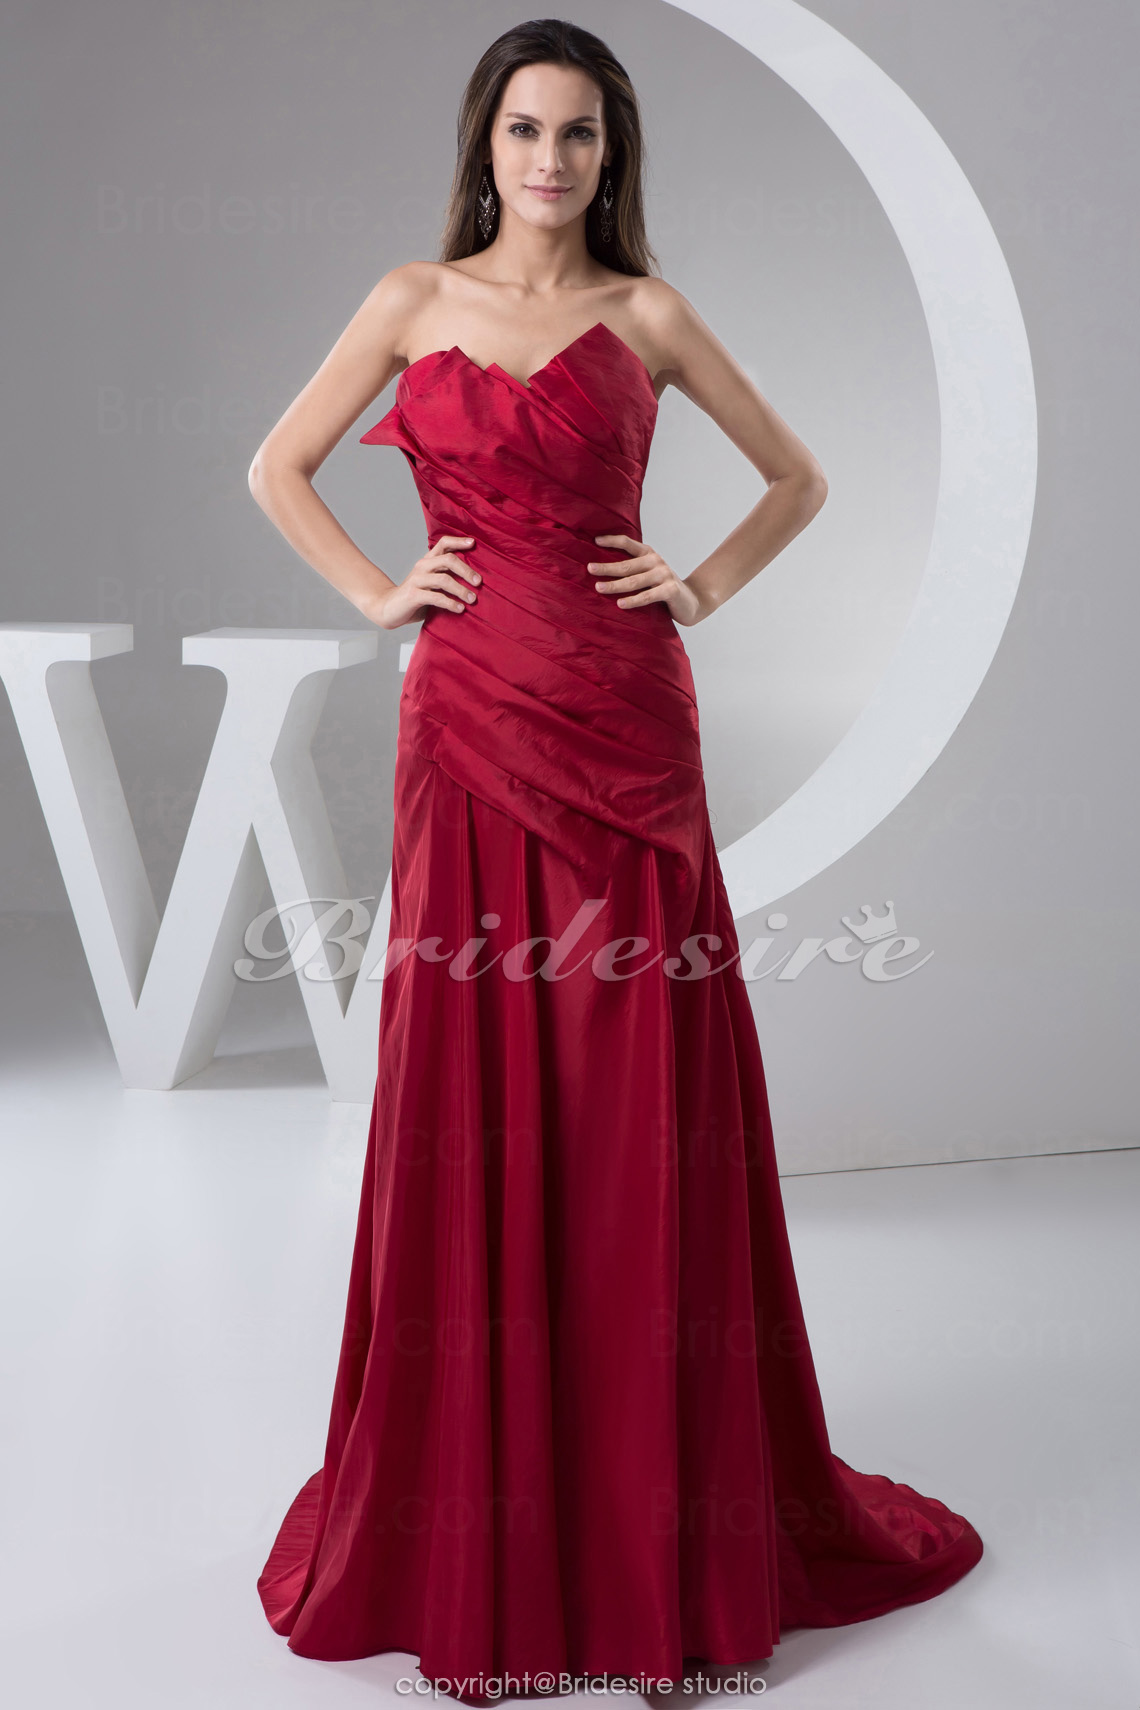 A-line Sweetheart Floor-length Sweep/Brush Train Sleeveless Taffeta Mother of the Bride Dress